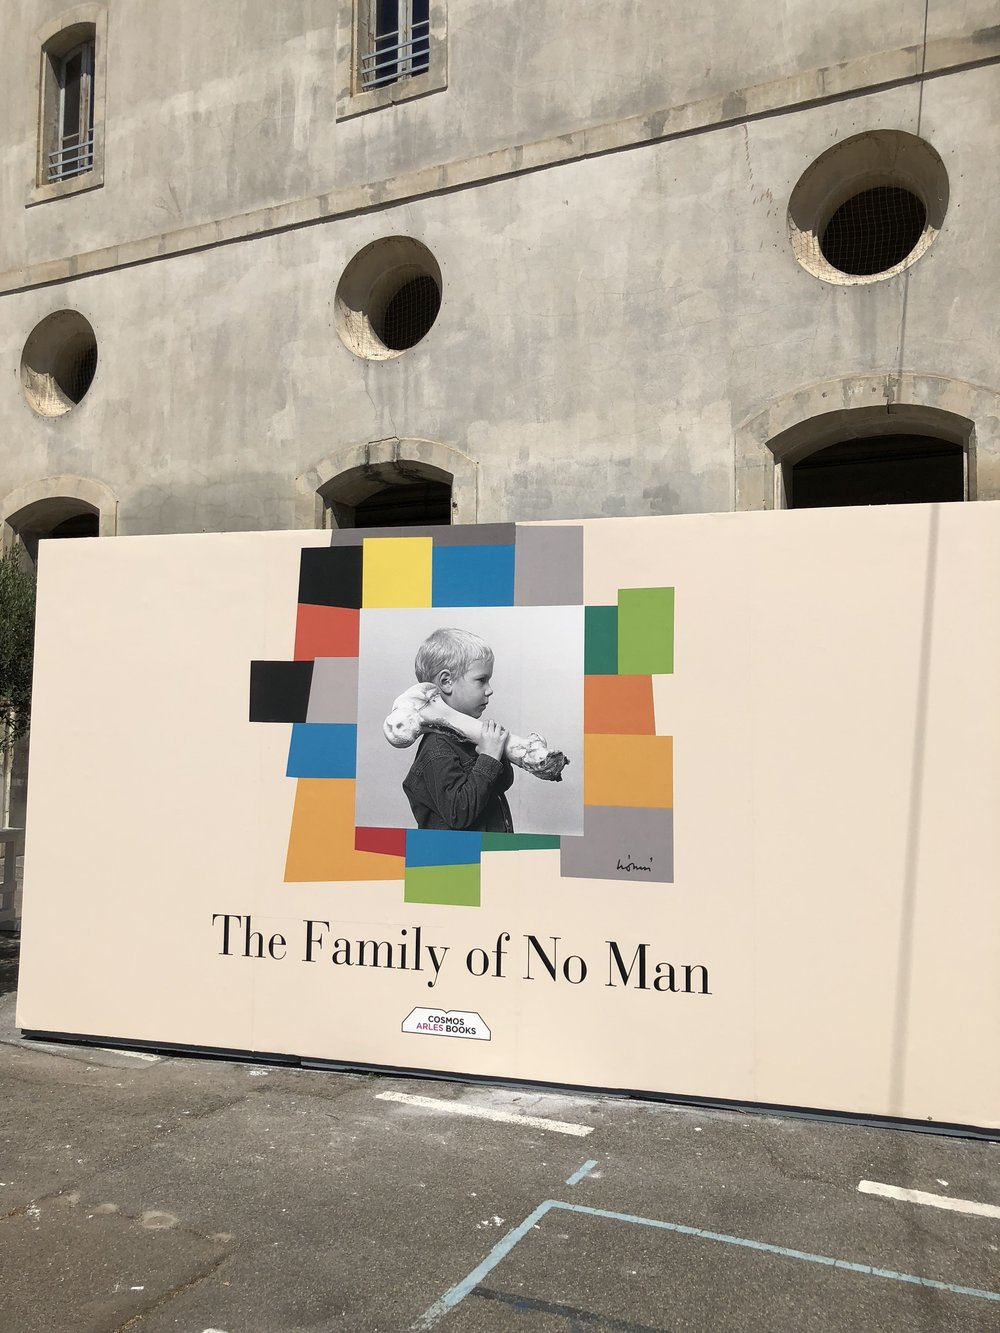 The Family of No Man